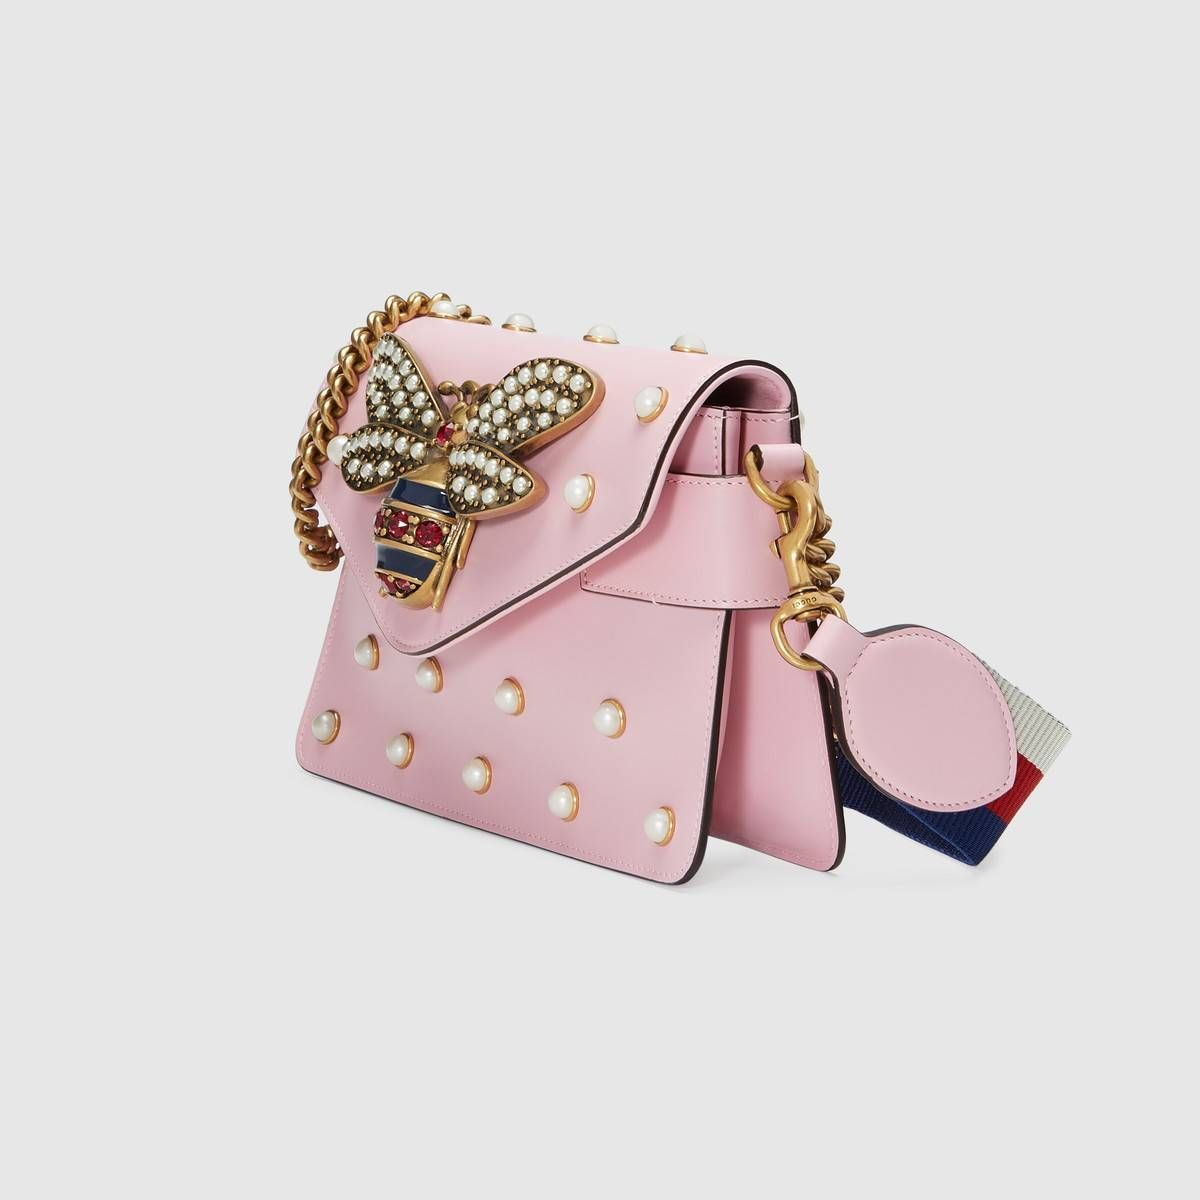 93b5206c7503 Shop the Broadway leather mini bag by Gucci. A mini bag with pearl studs  and metal bee detail. The bee's striped body is highlighted with blue  enamel and ...